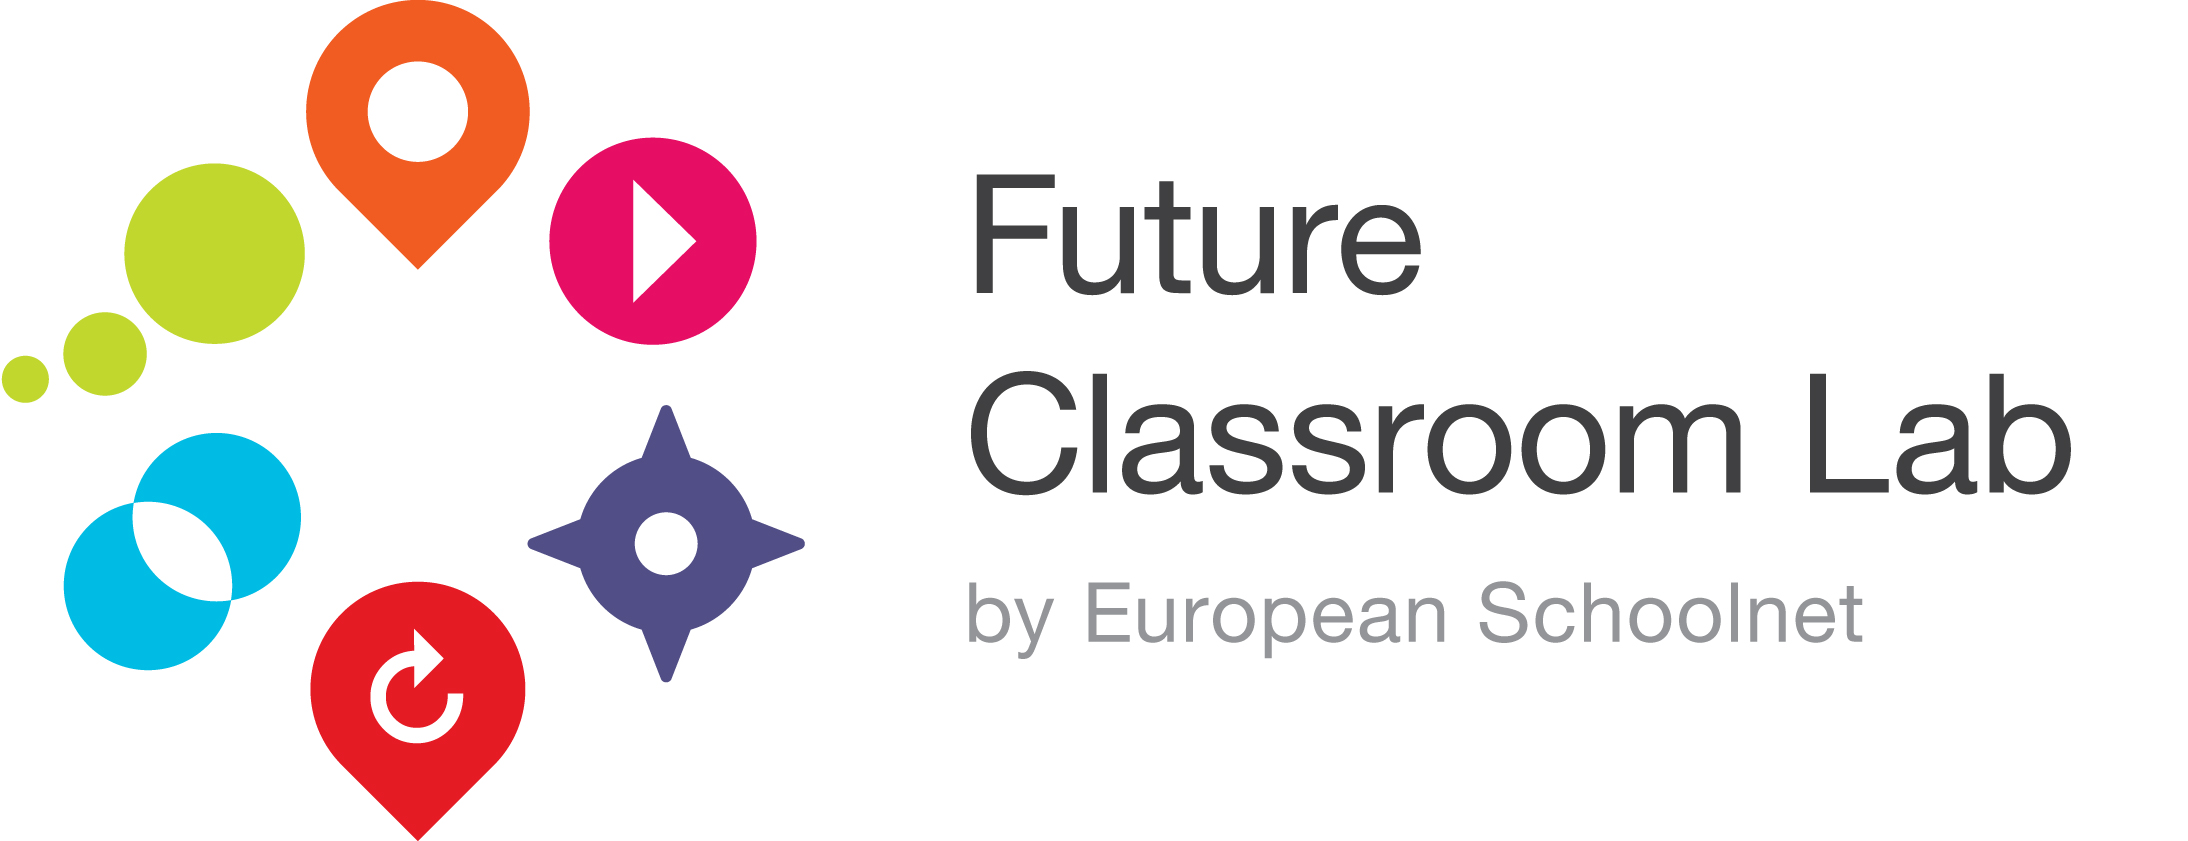 European Schoolnet Future Classroom Lab Open Day: